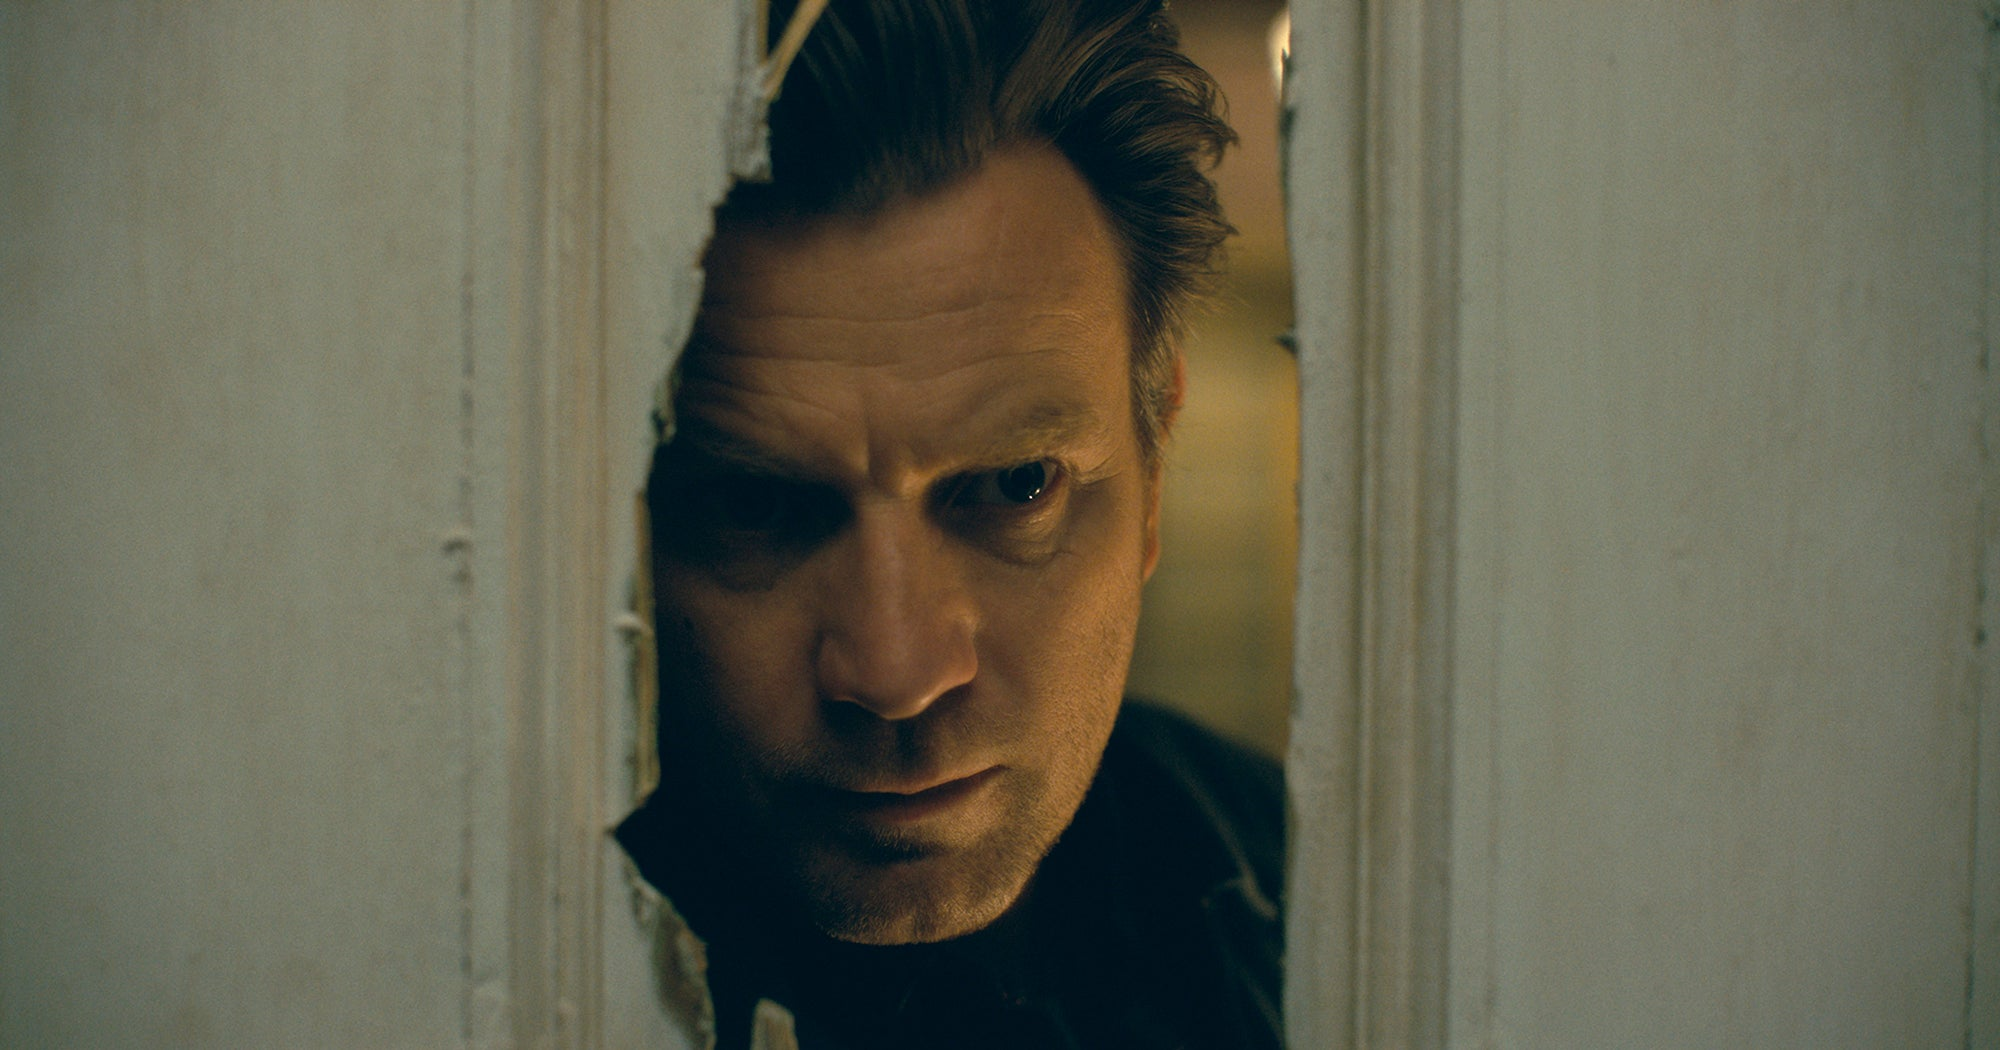 The Shining Sequel Doctor Sleep Is Ready To Bring You Back To The Overlook Hotel